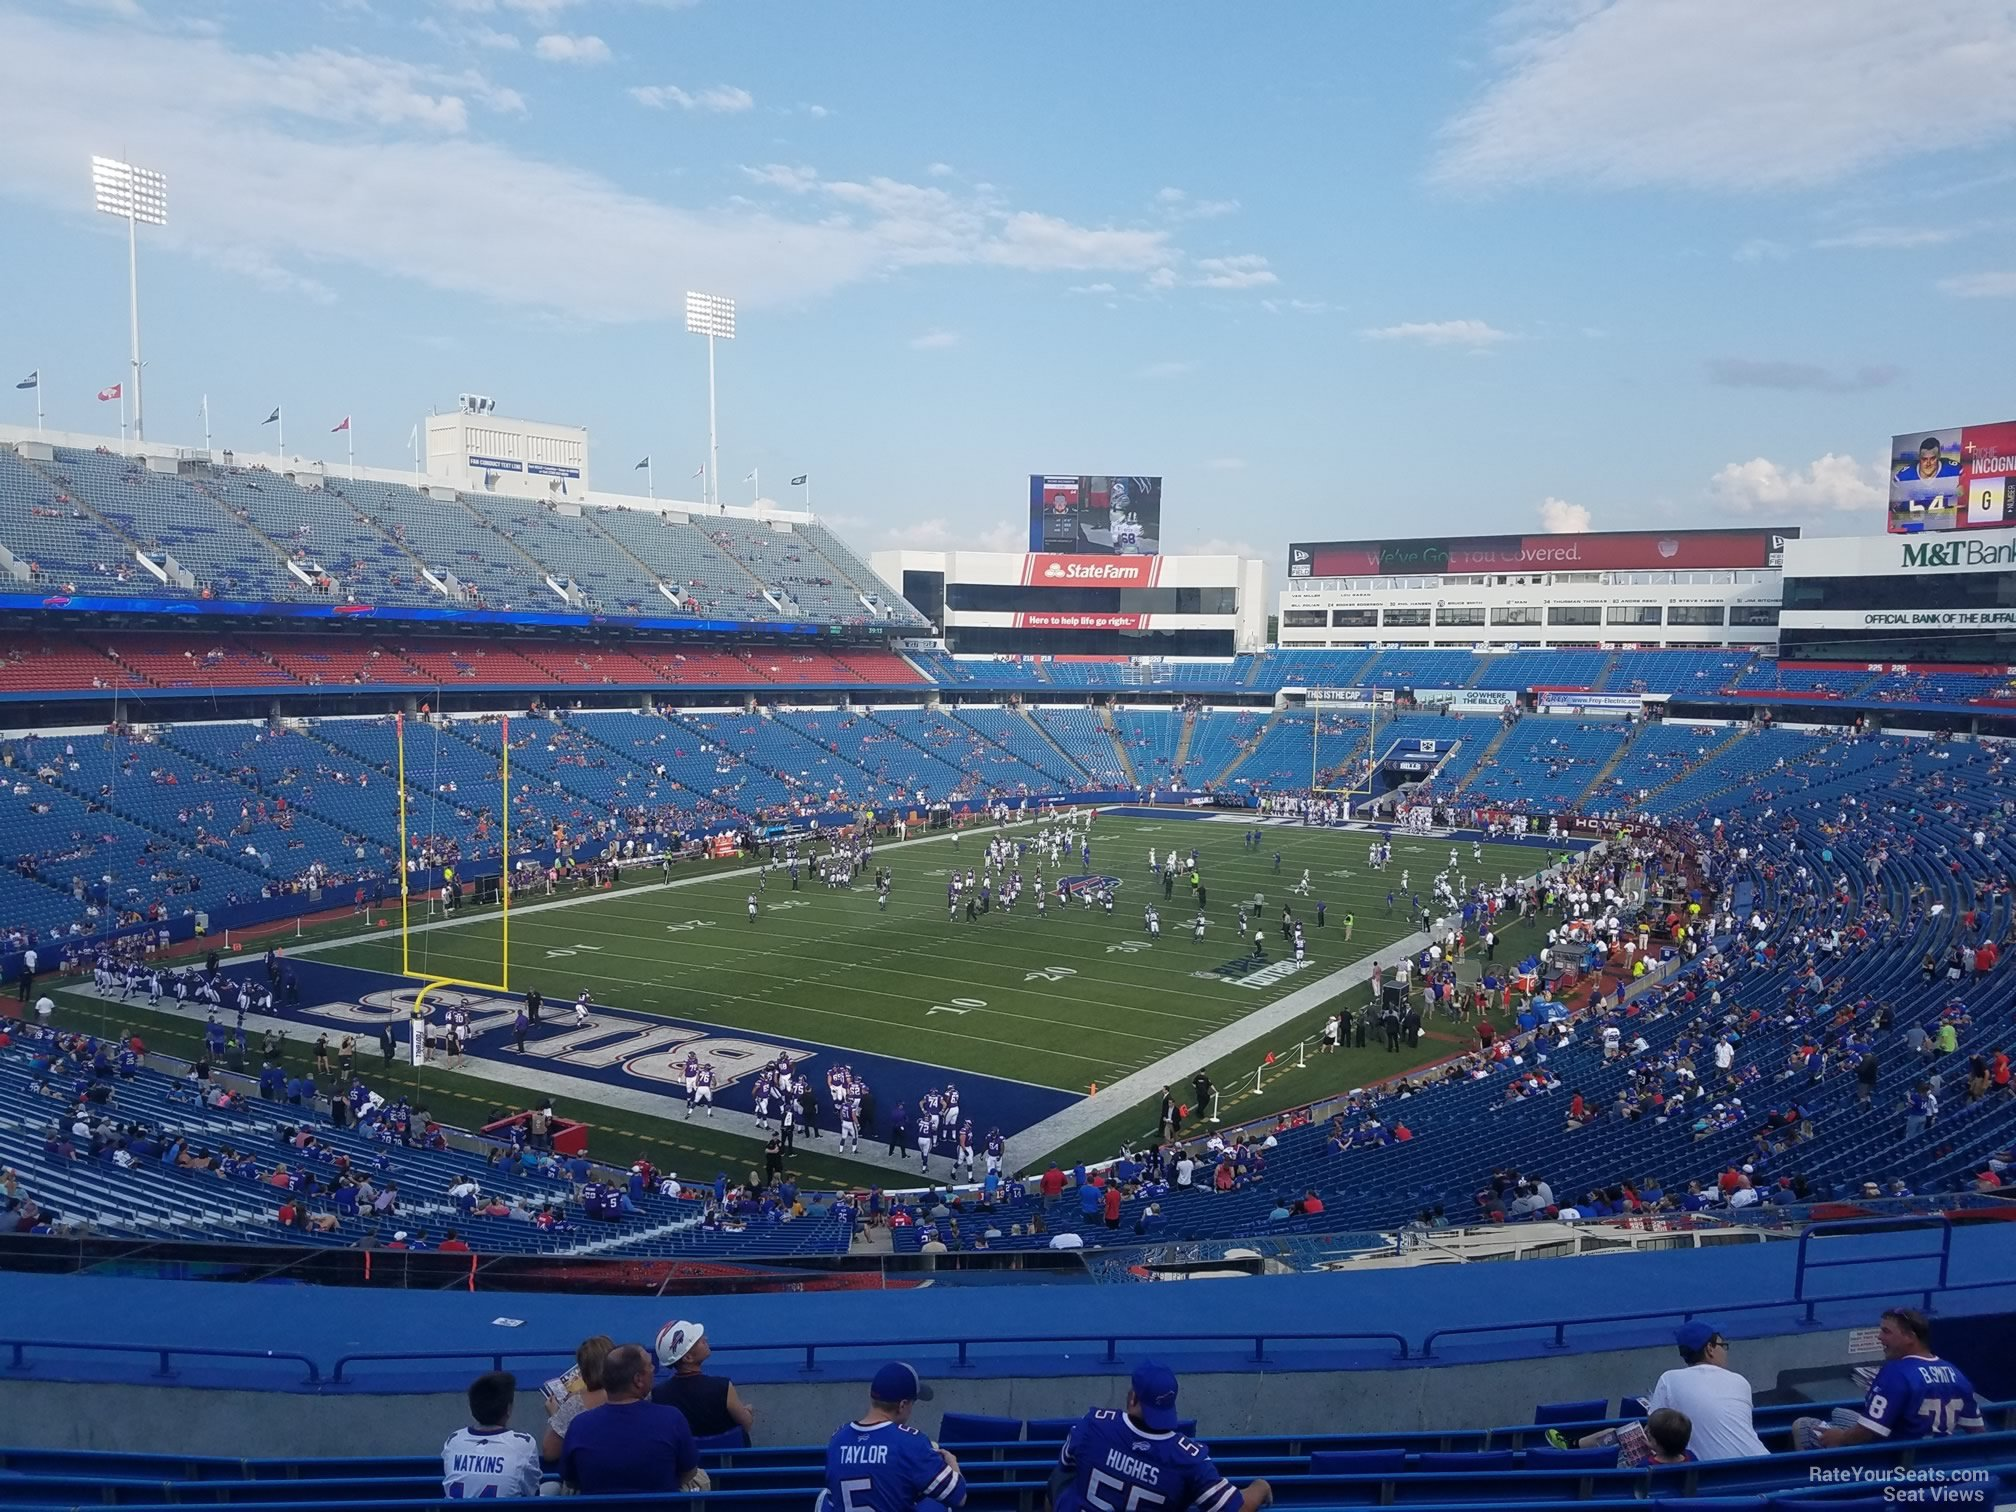 Section 241 seat view